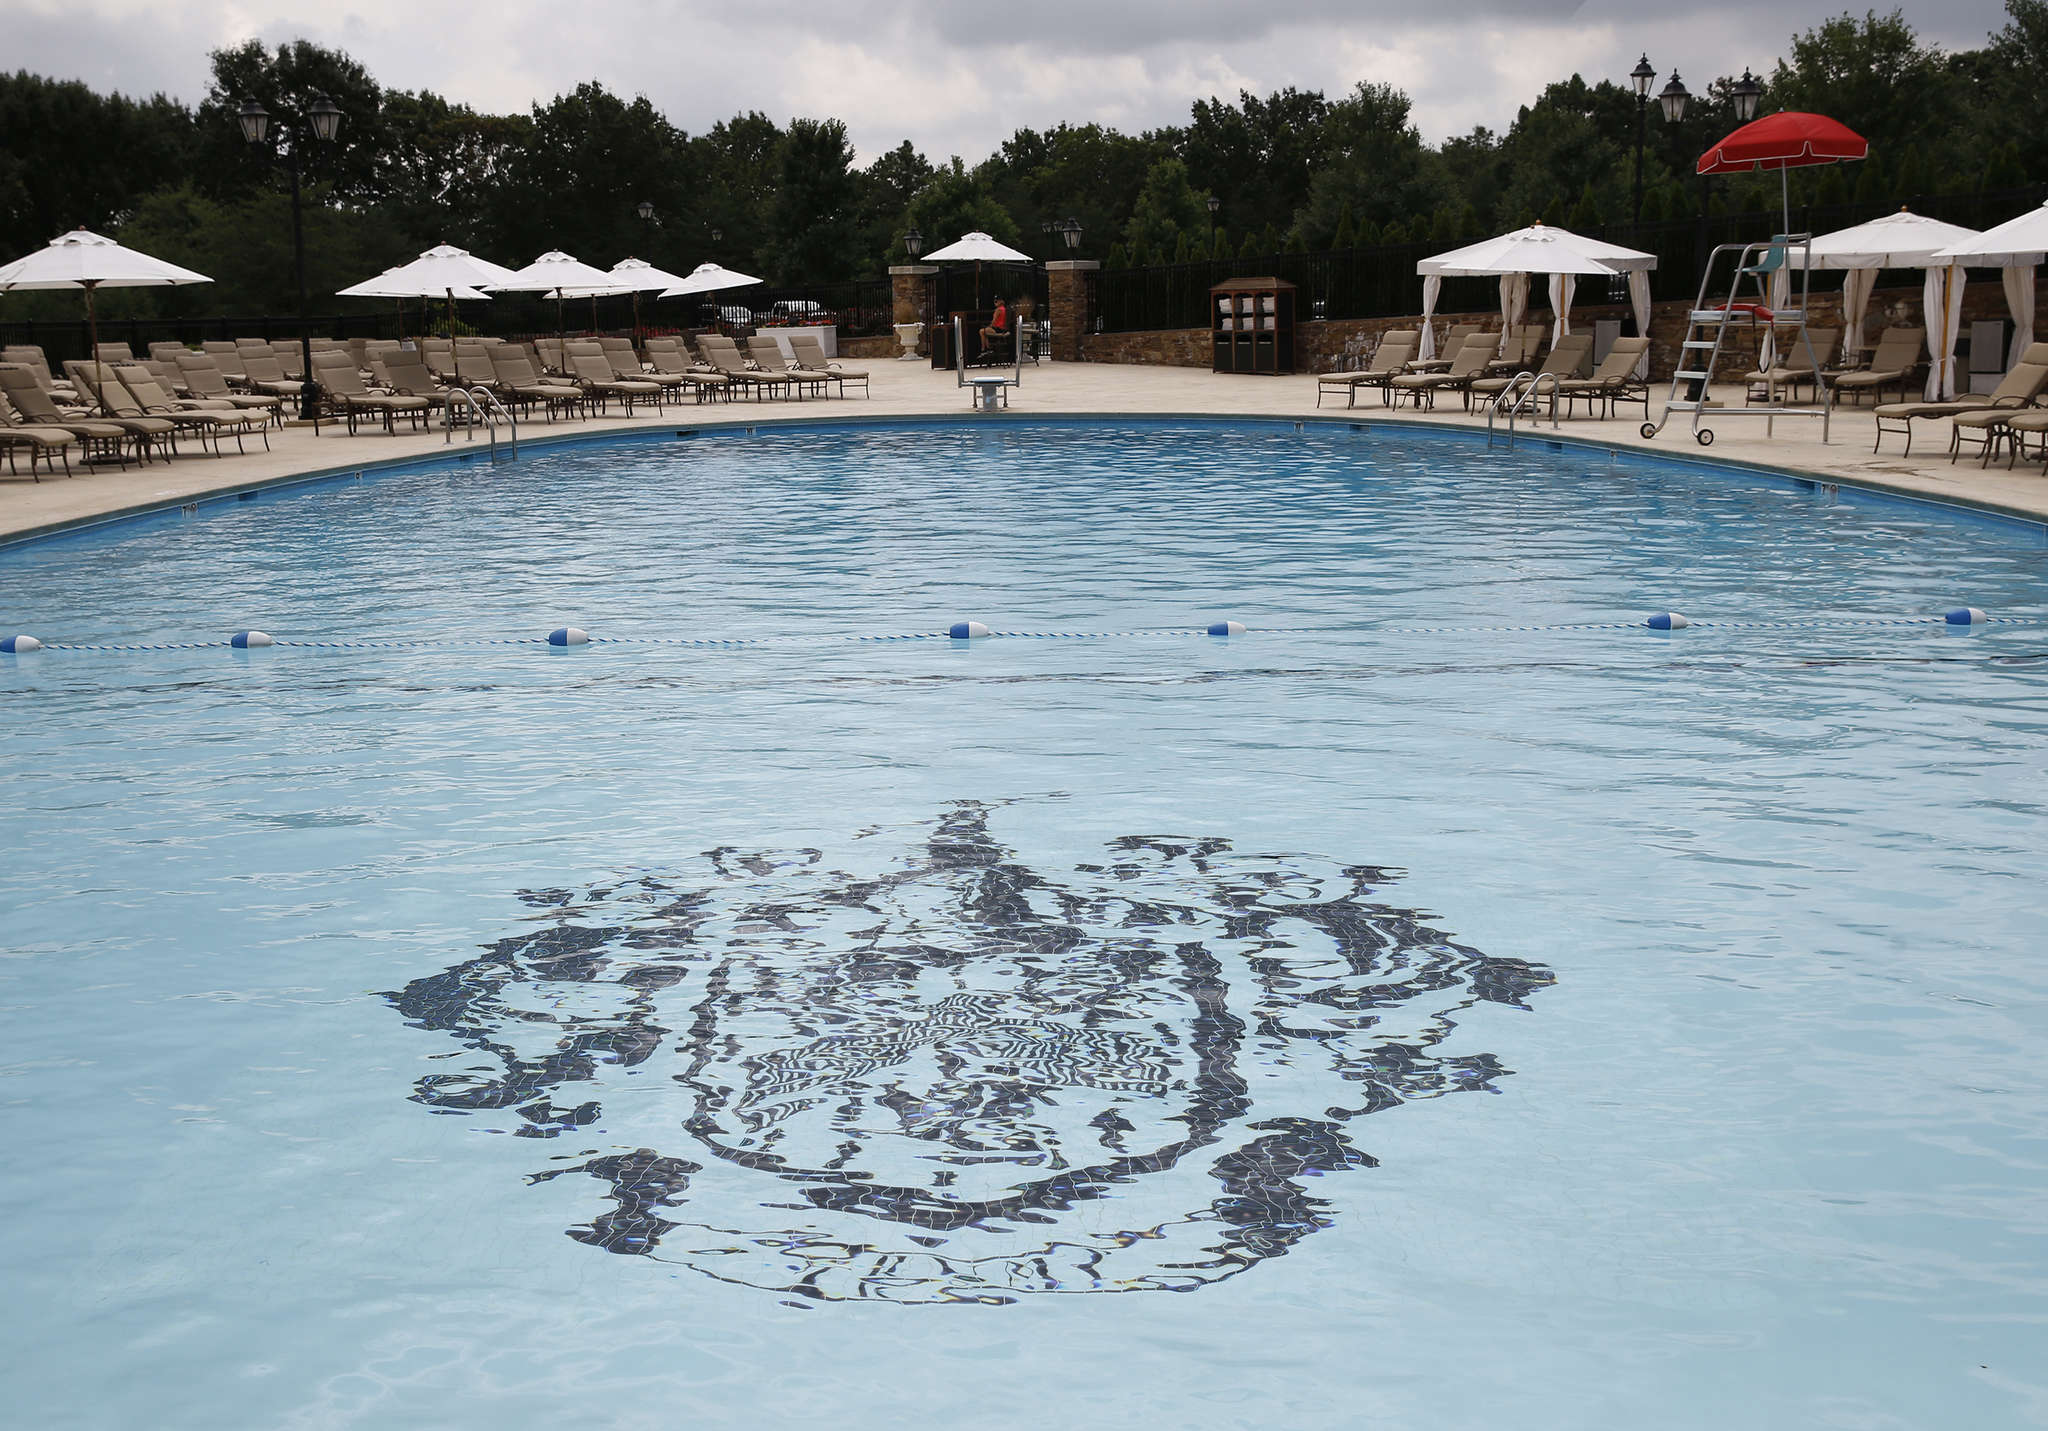 The Trump coat of arms is painted on the bottom of the swimming pool at Trump National Golf Club Philadelphia.